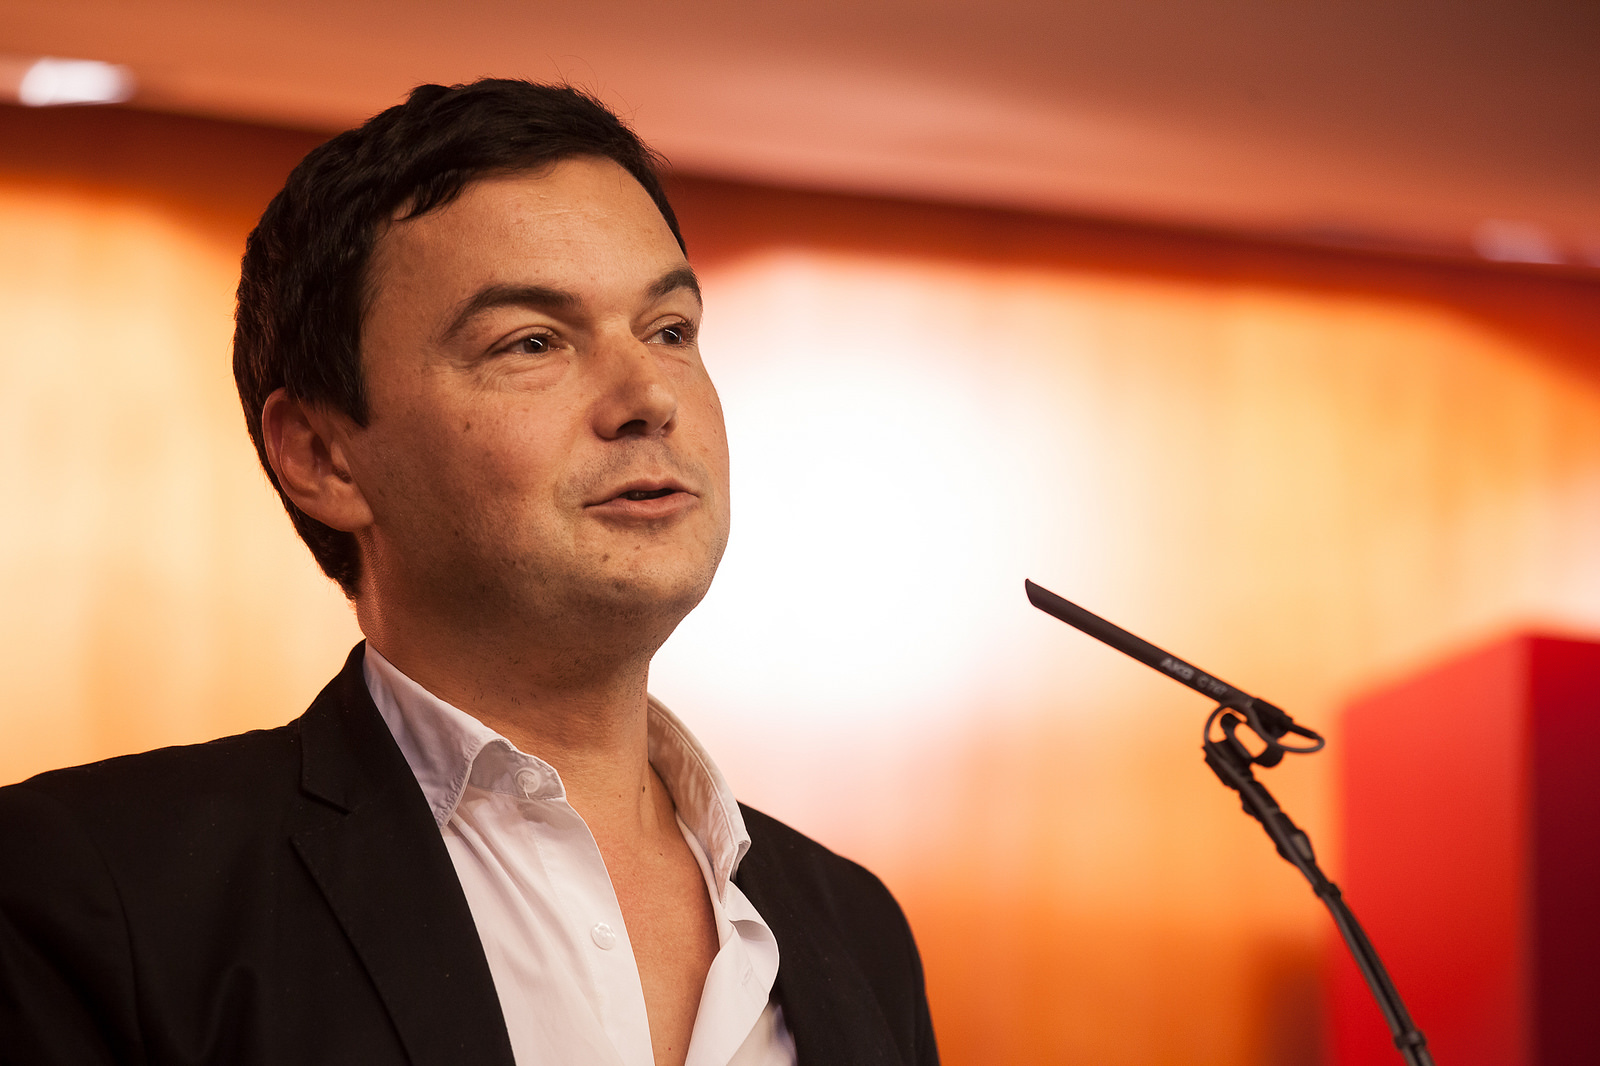 Thomas Piketty: Die Schlacht um den Euro. Interventionen. #booklewal